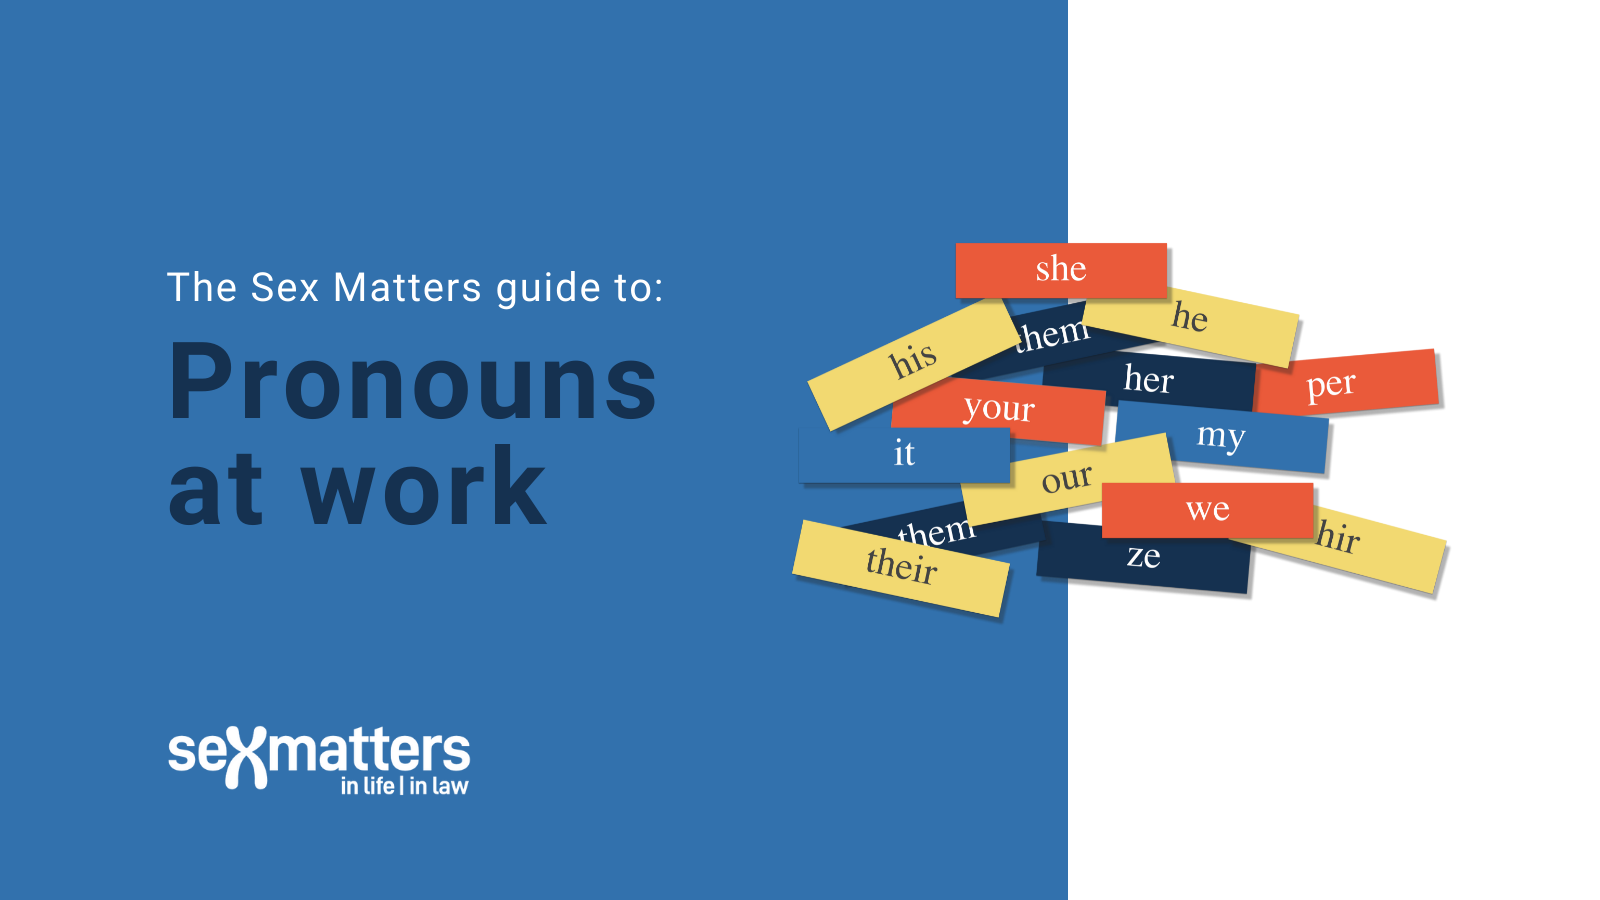 The Sex Matters guide to: Pronouns at work